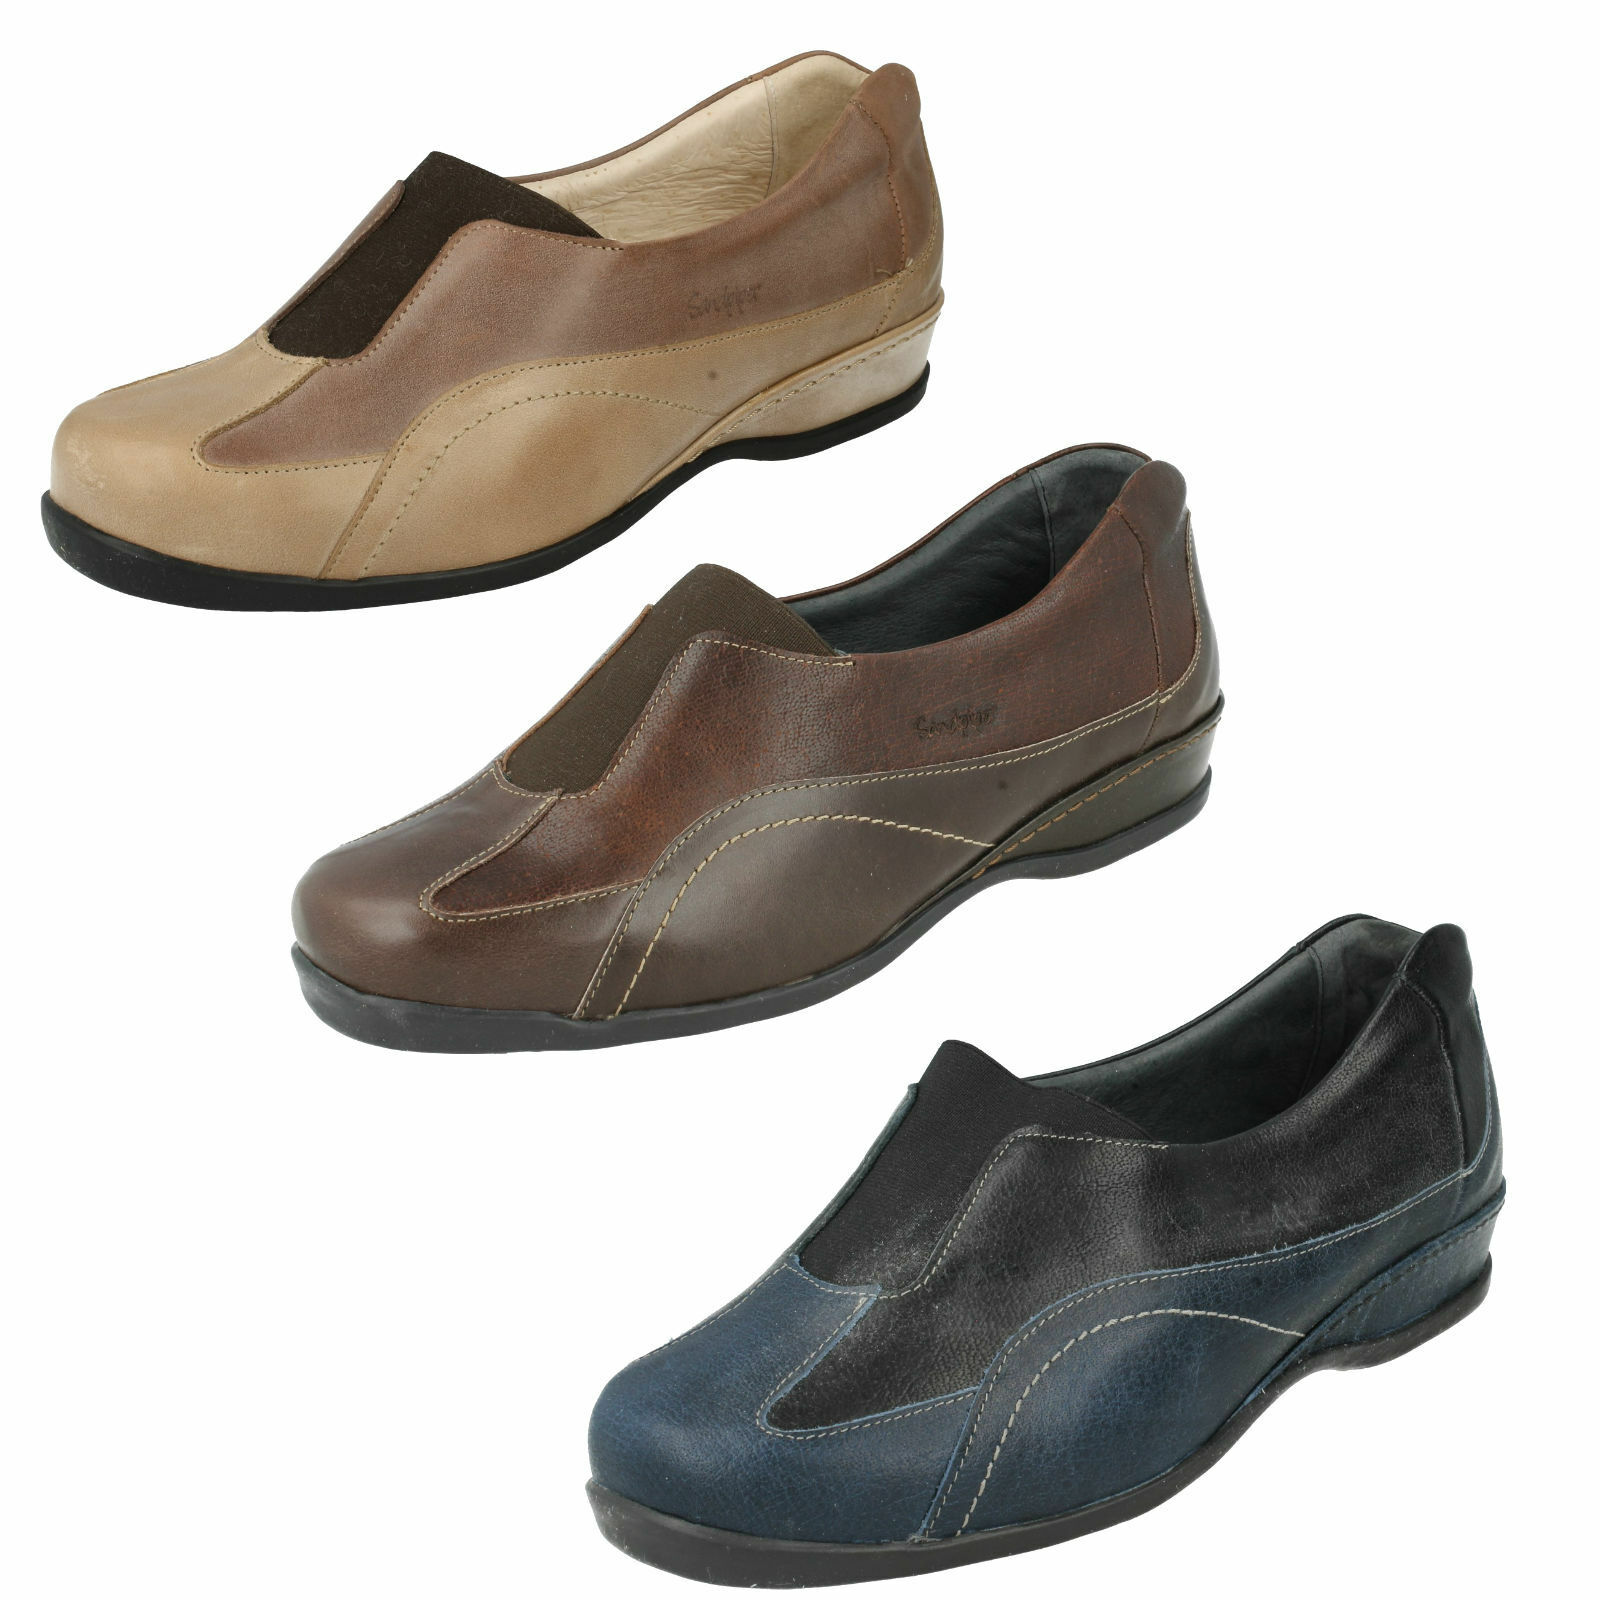 LADIES SANDPIPER ARTEN SLIP ON CASUAL EVERYDAY LEATHER SHOES